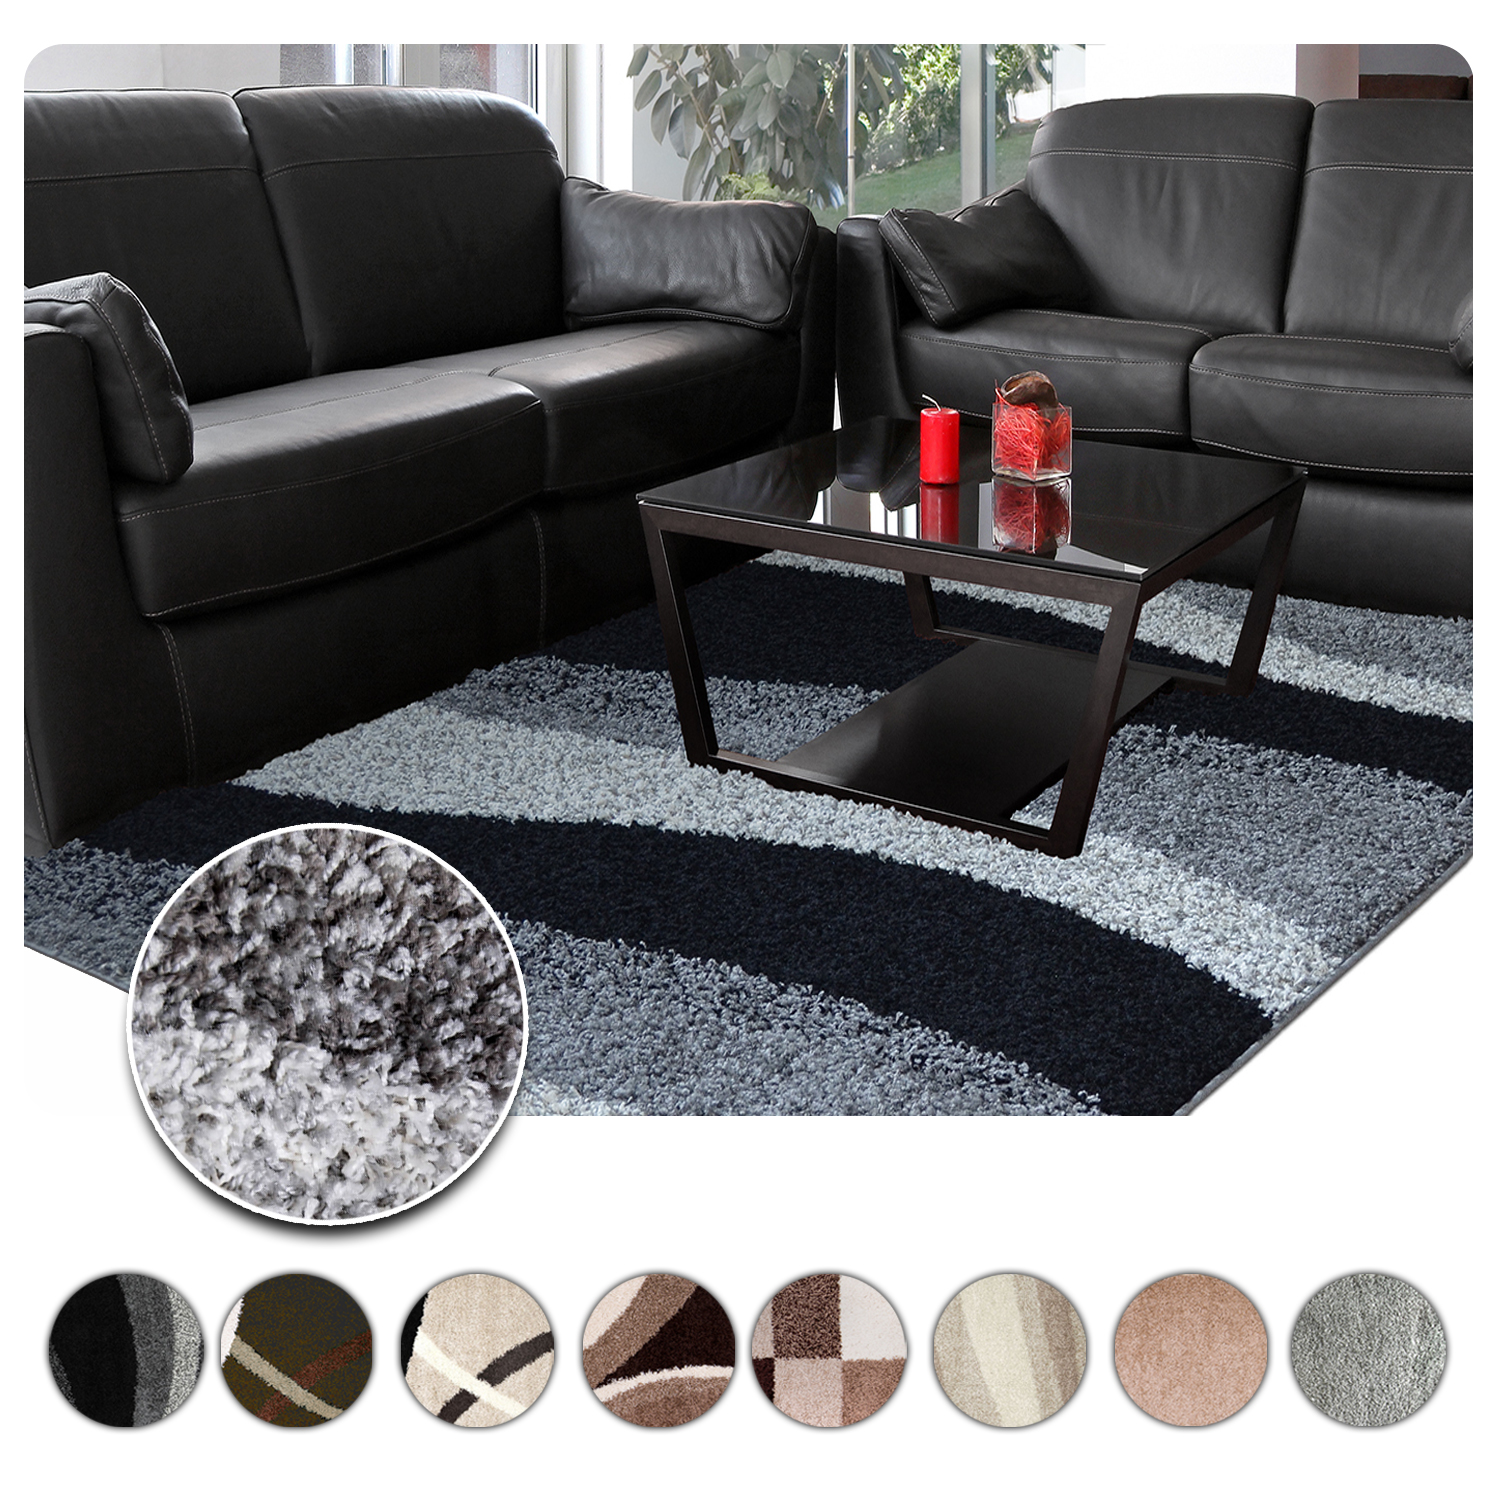 Details About Shag Rugs Modern Area Rug Contemporary Abstract Or Solid Shaggy Flokati Carpet